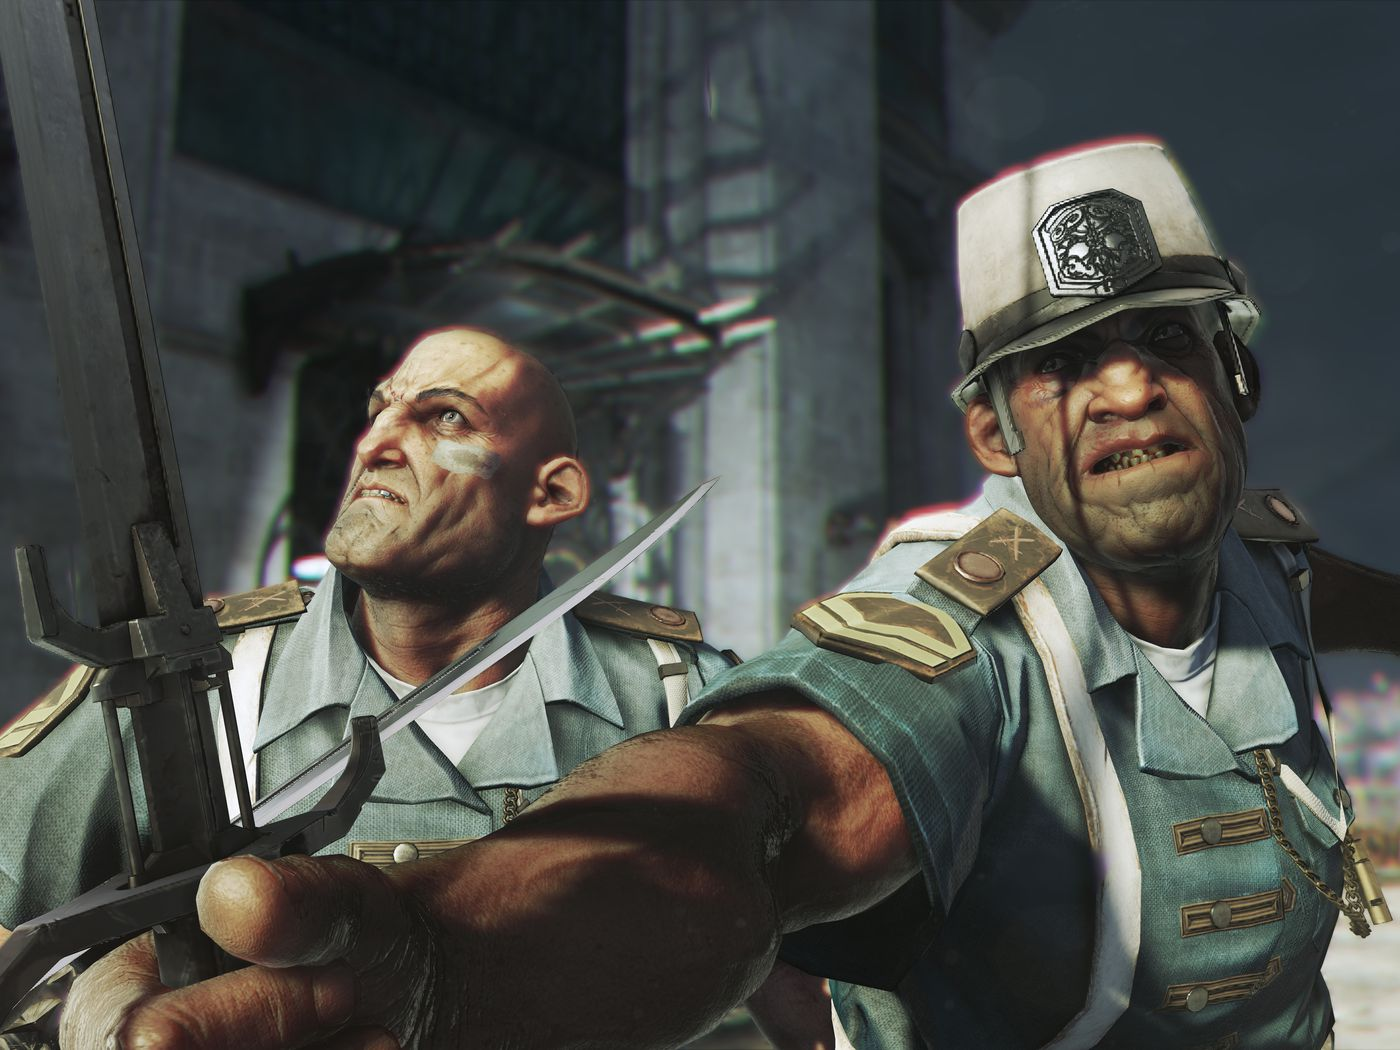 Two soldiers, wearing light blue uniforms that have military badges on them. They are both holding swords, ready to attack. One of them is wearing a white hat, which probably makes his status known.